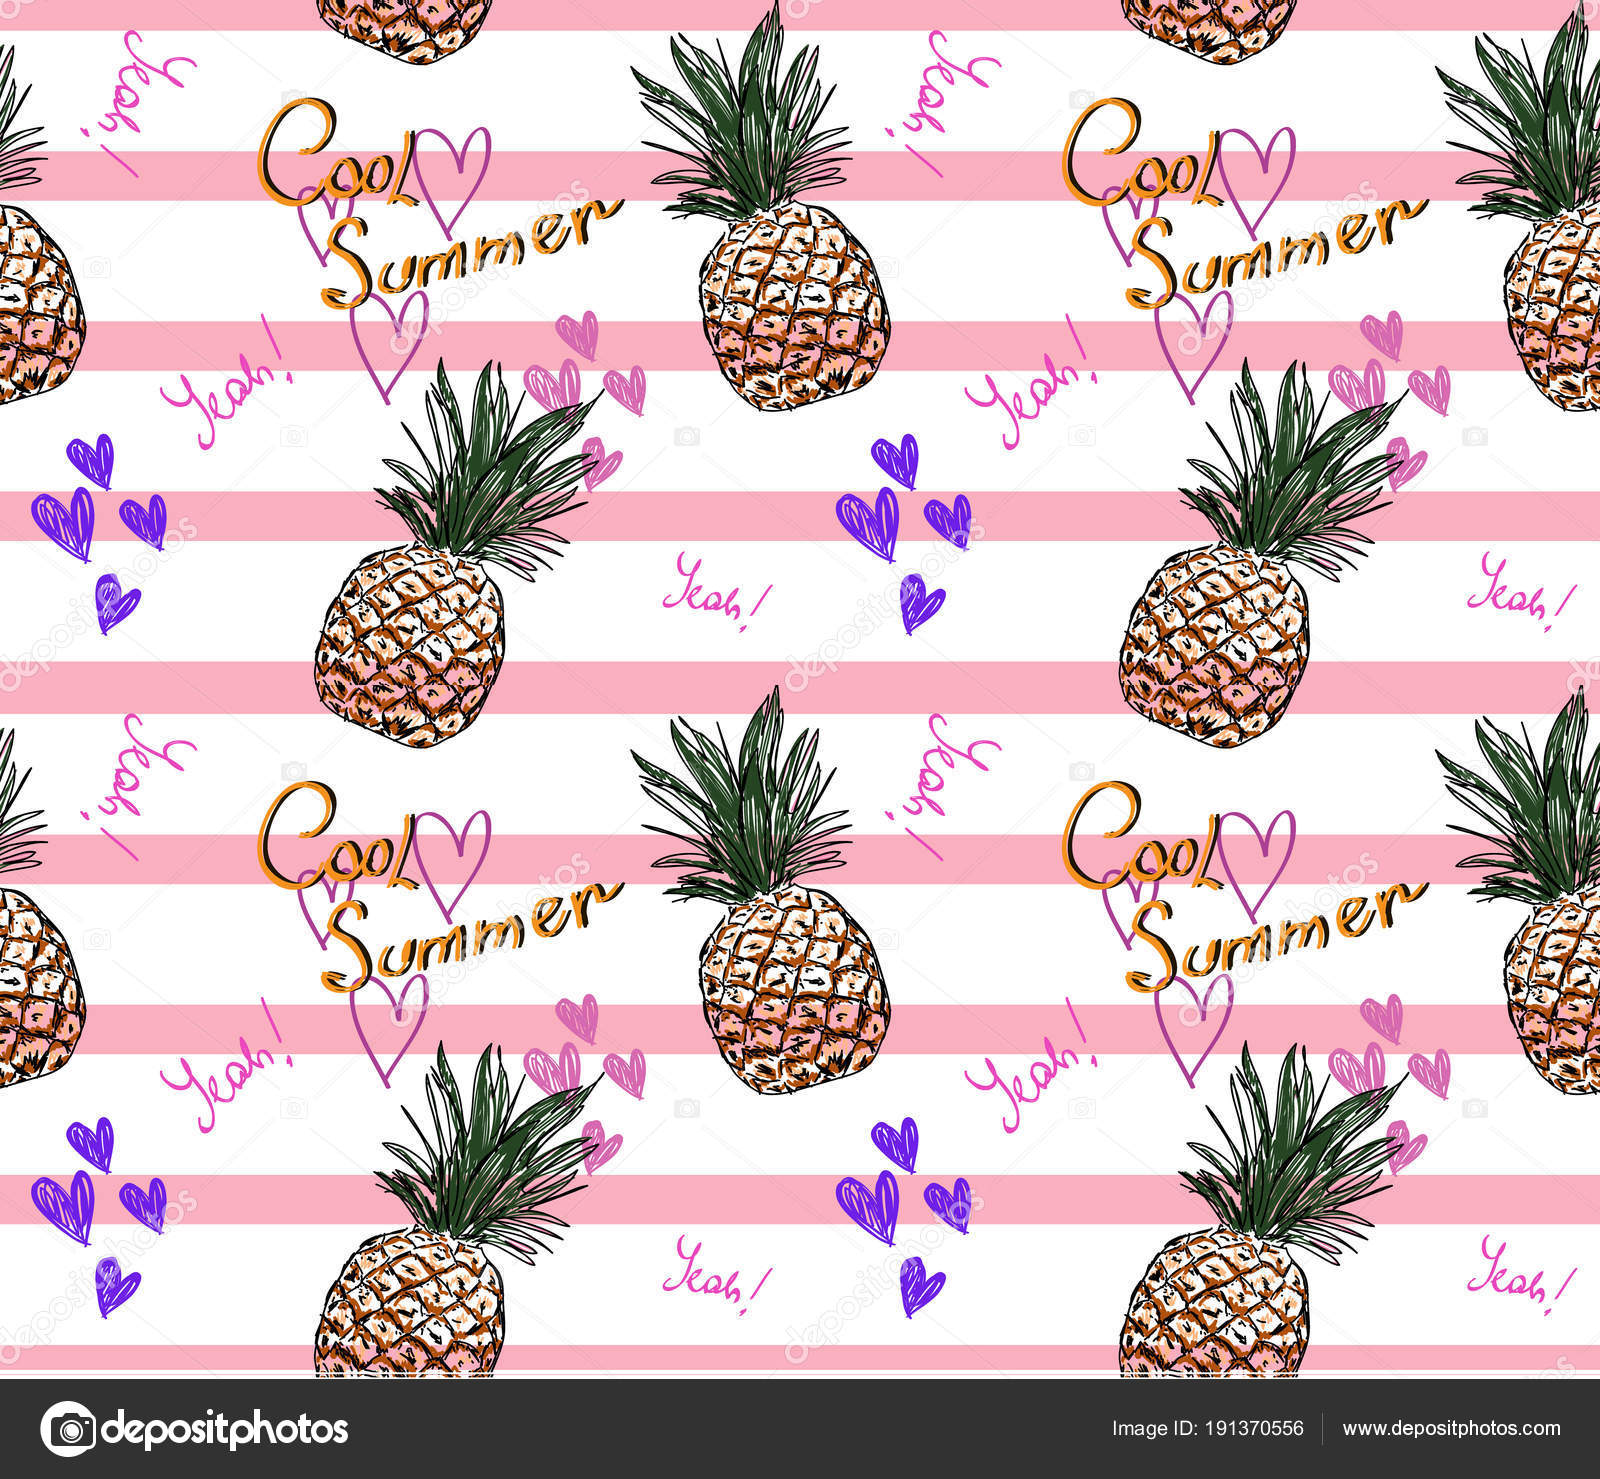 Cute Pineapple Pattern With Text Cool Summer And Heart On Pink Striped Background Vector By Galieva0410